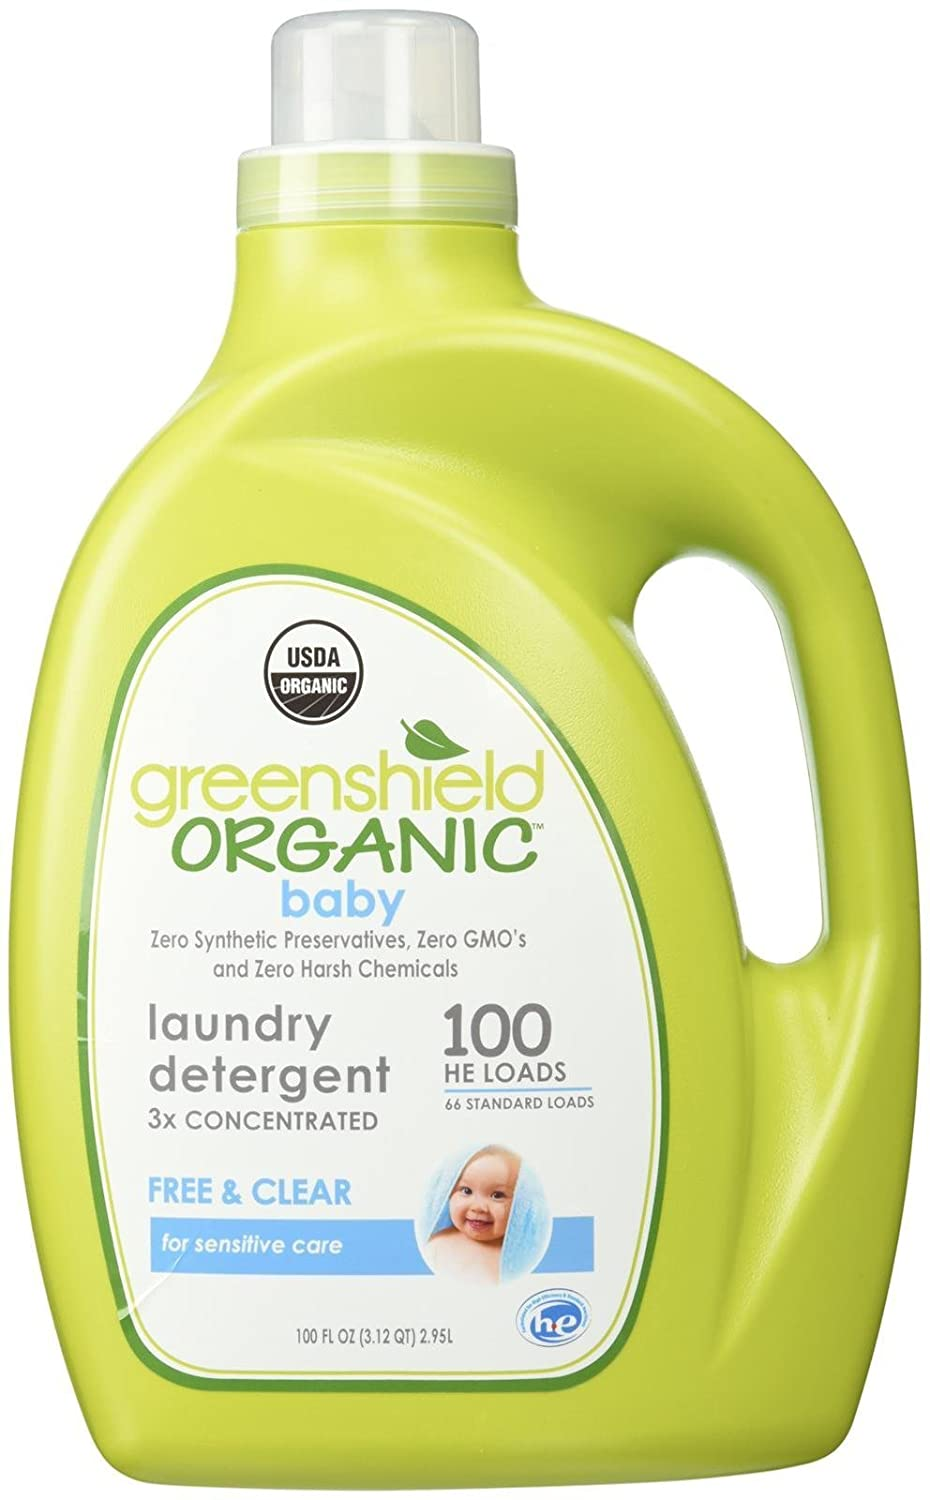 Best value laundry detergent